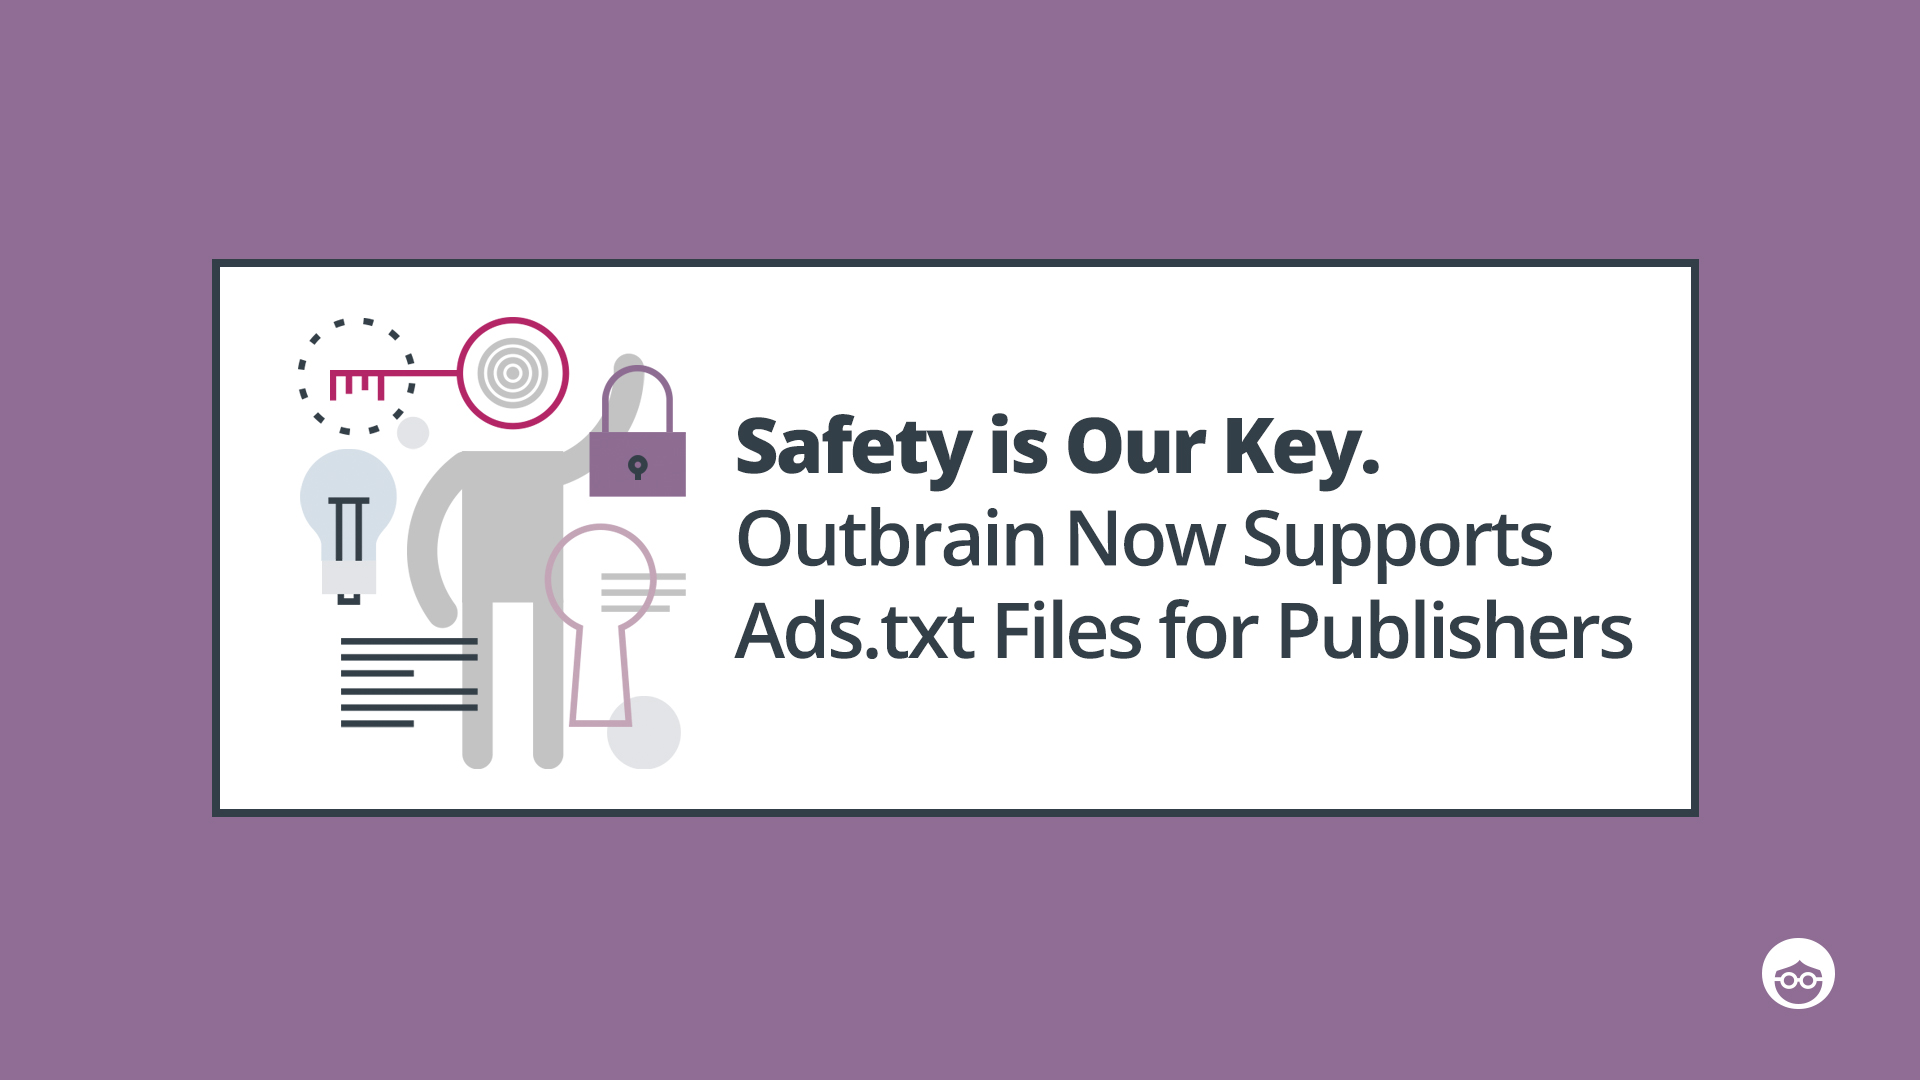 Outbrain Now Supports Ads.txt for Publishers